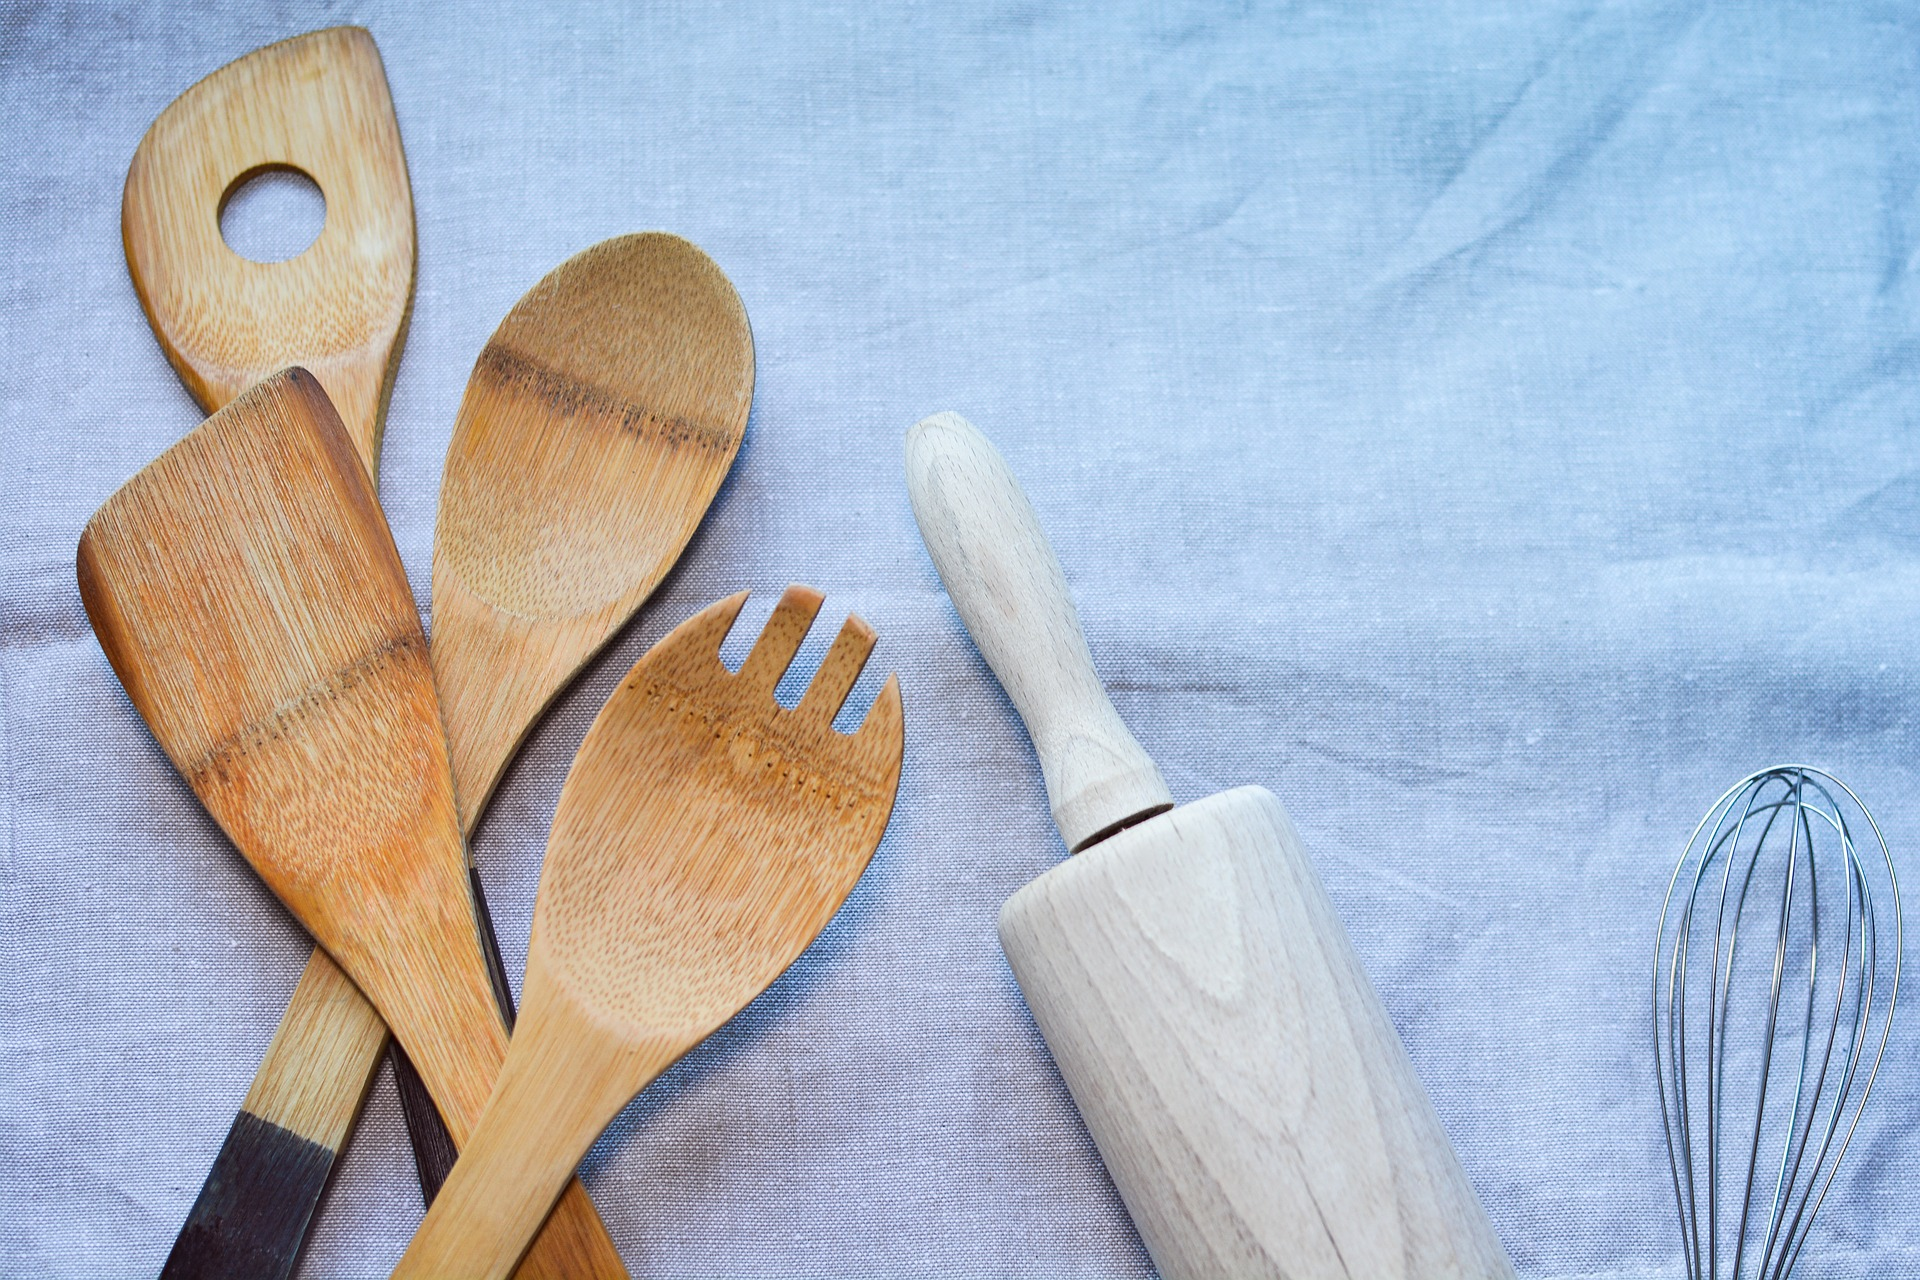 a collection of wooden kitchen utensils